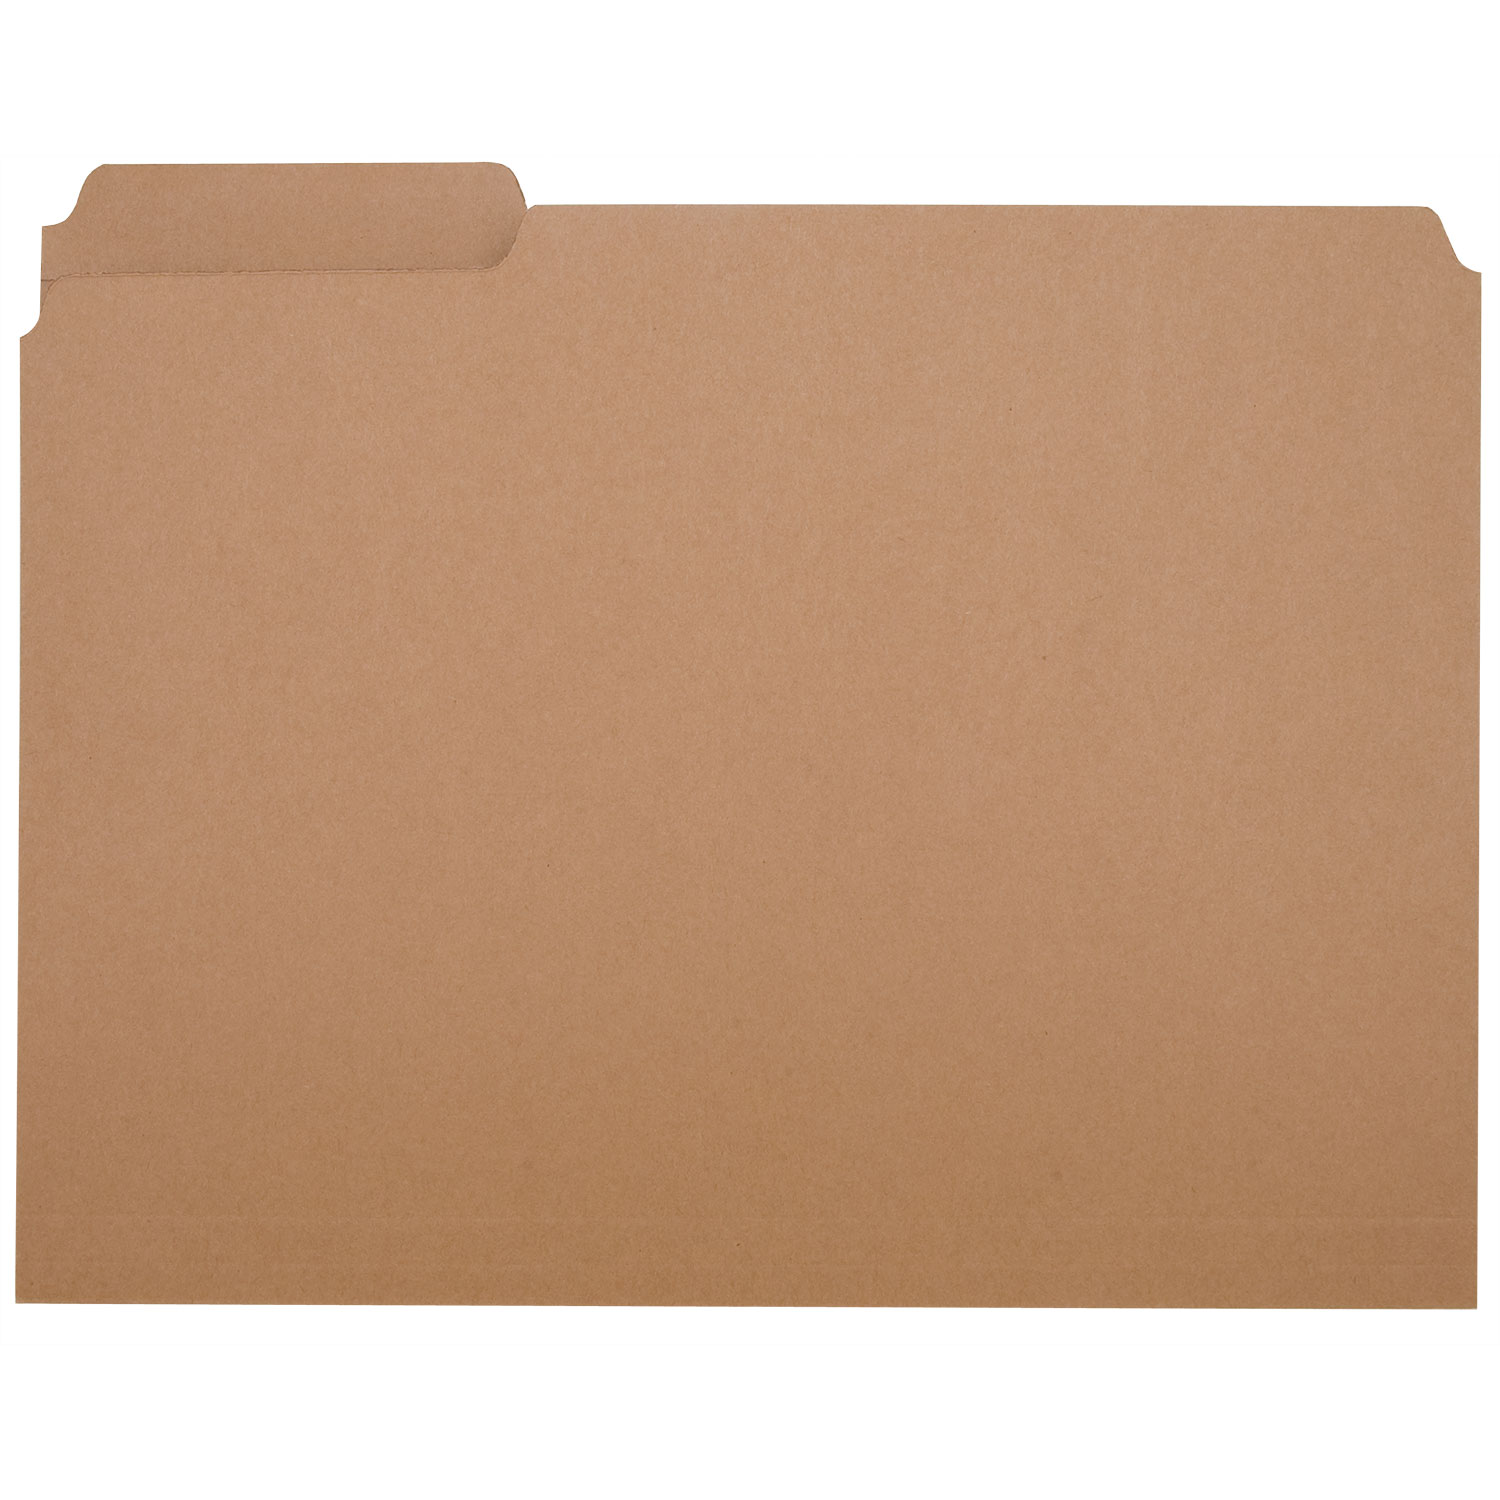 See the SKILCRAFT Medium File Folder and other File Folders